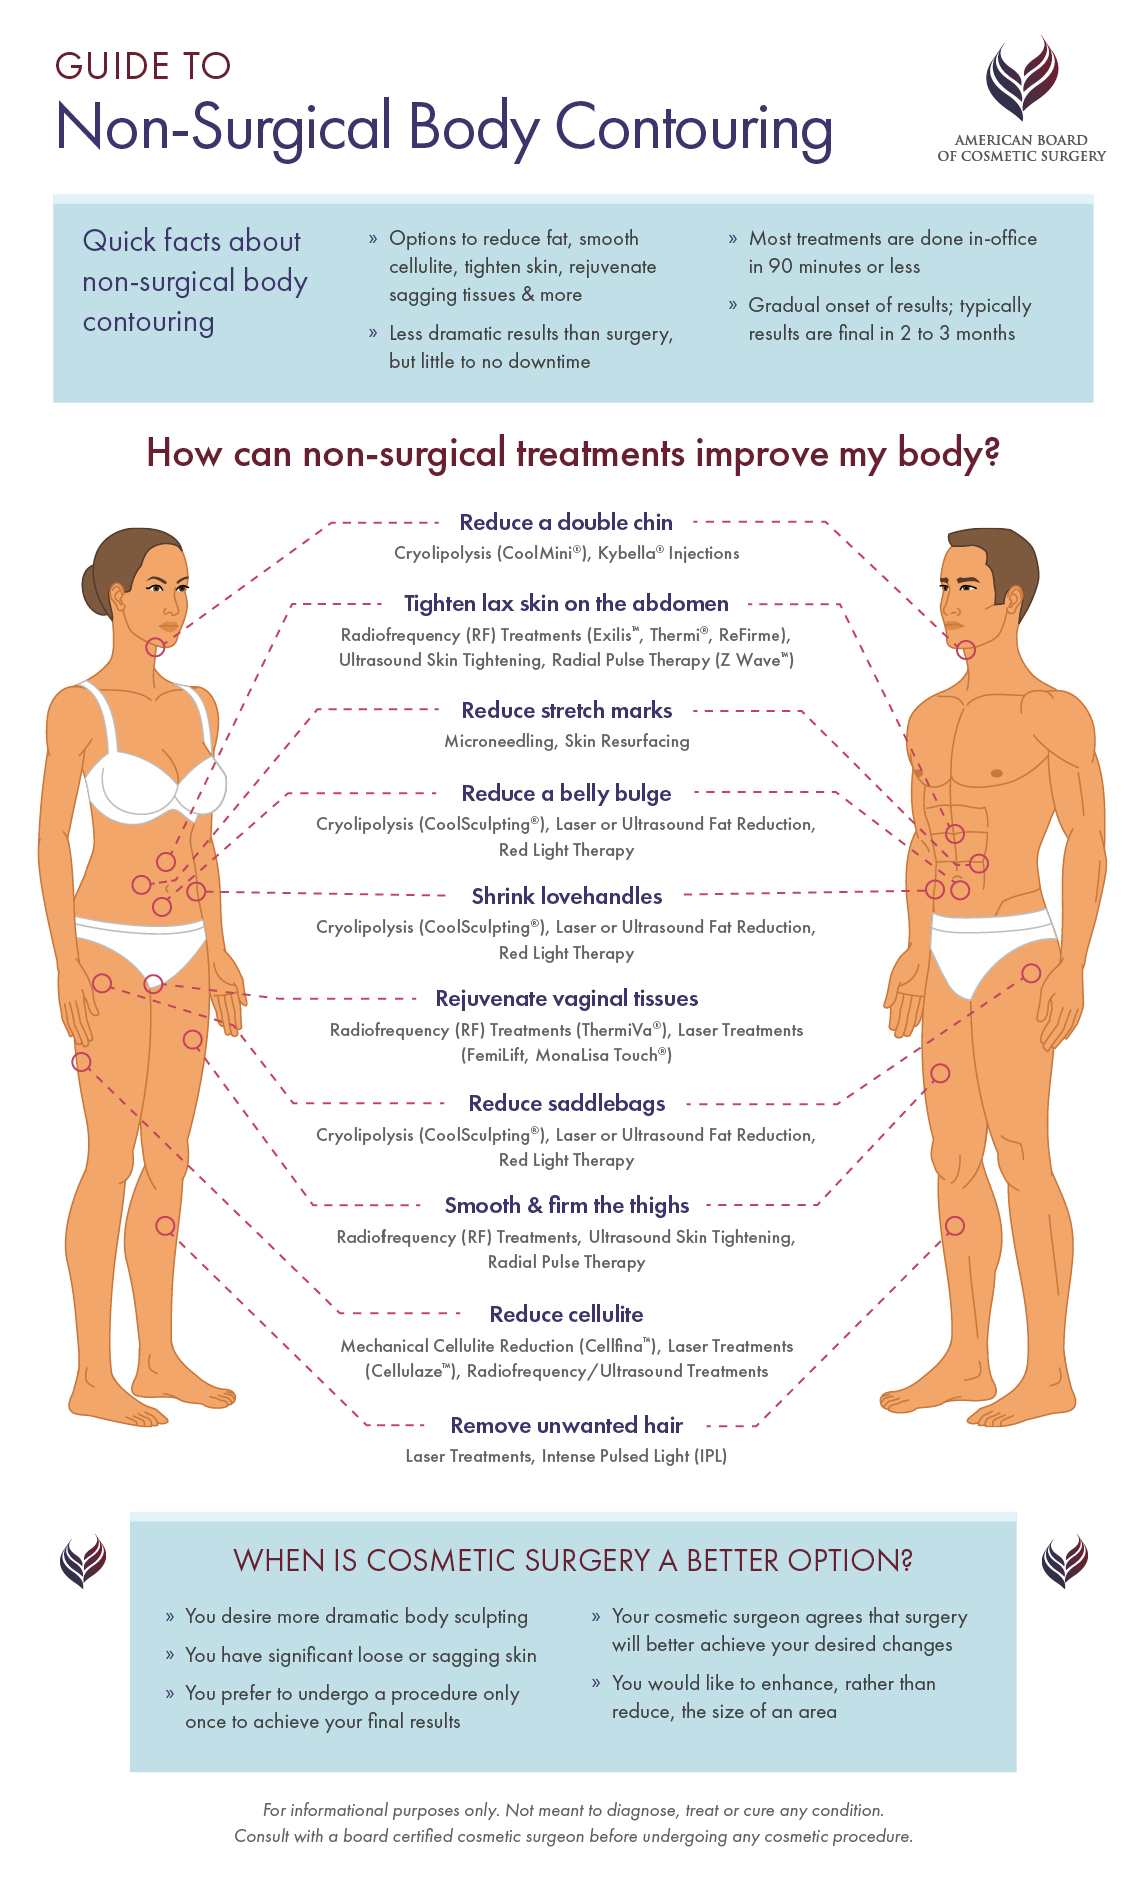 Guide to Non-Surgical Body Contouring